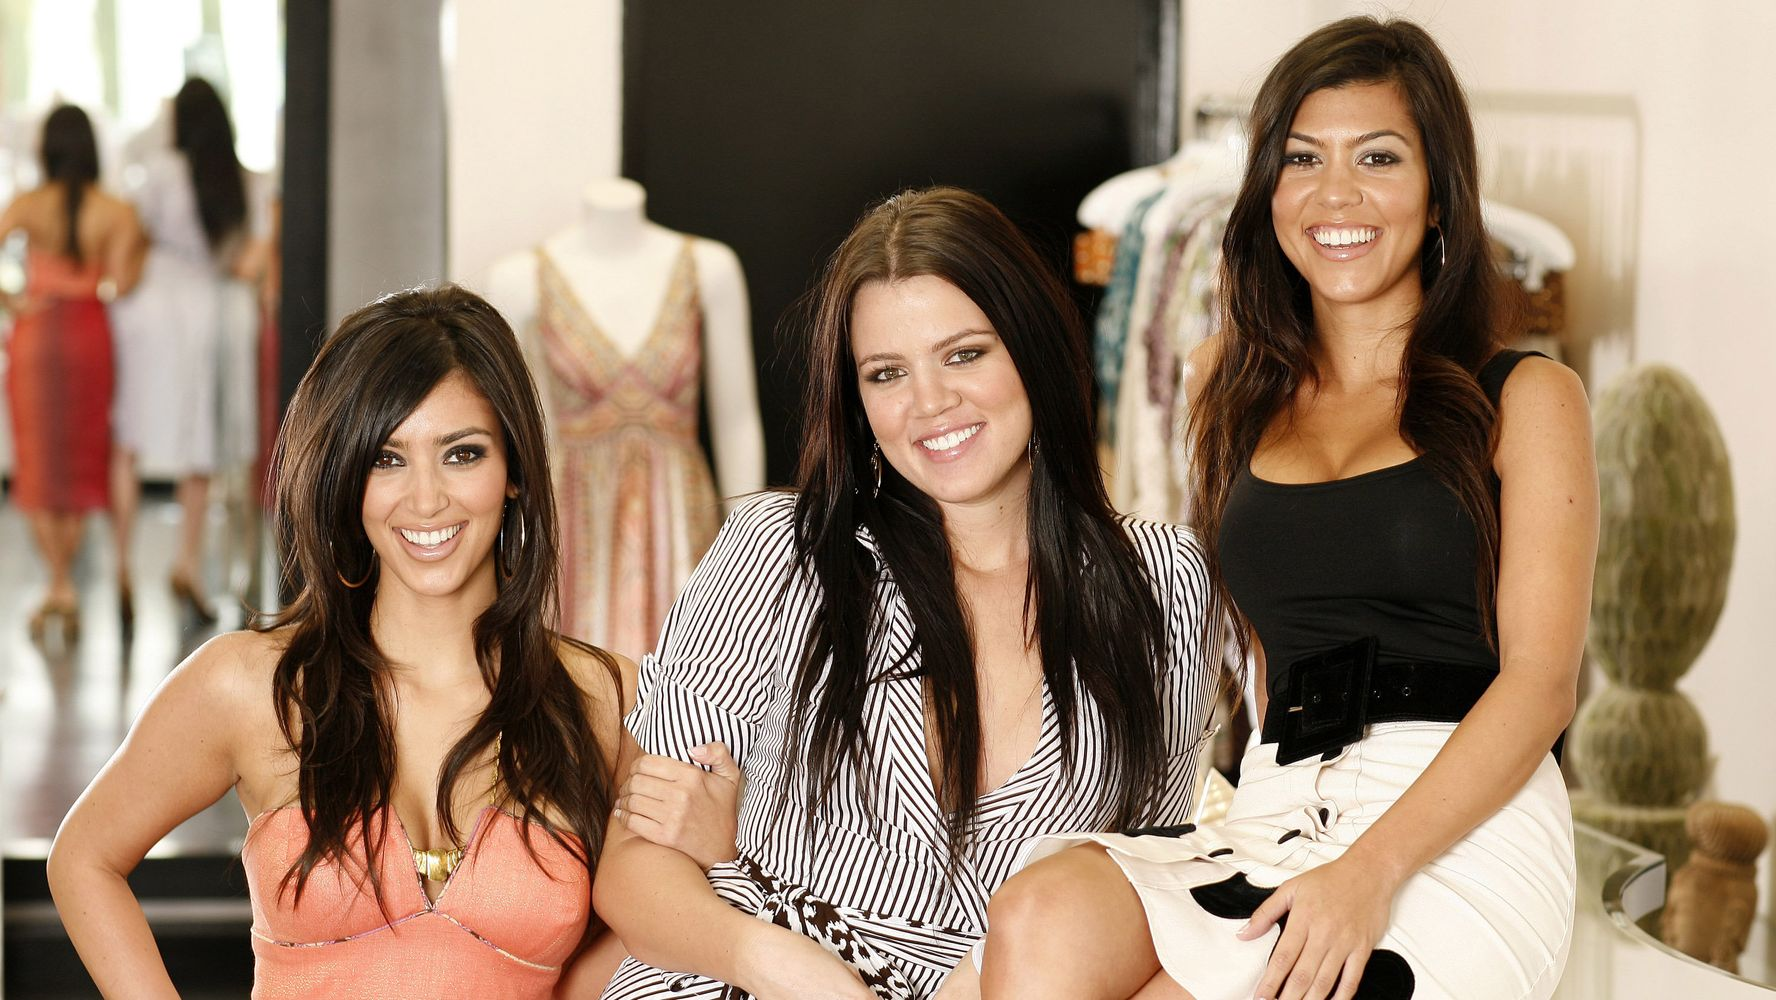 Khloe Kardashian Admits She Dyed Her Hair Dark To Fit In With Her Sisters Huffpost Life